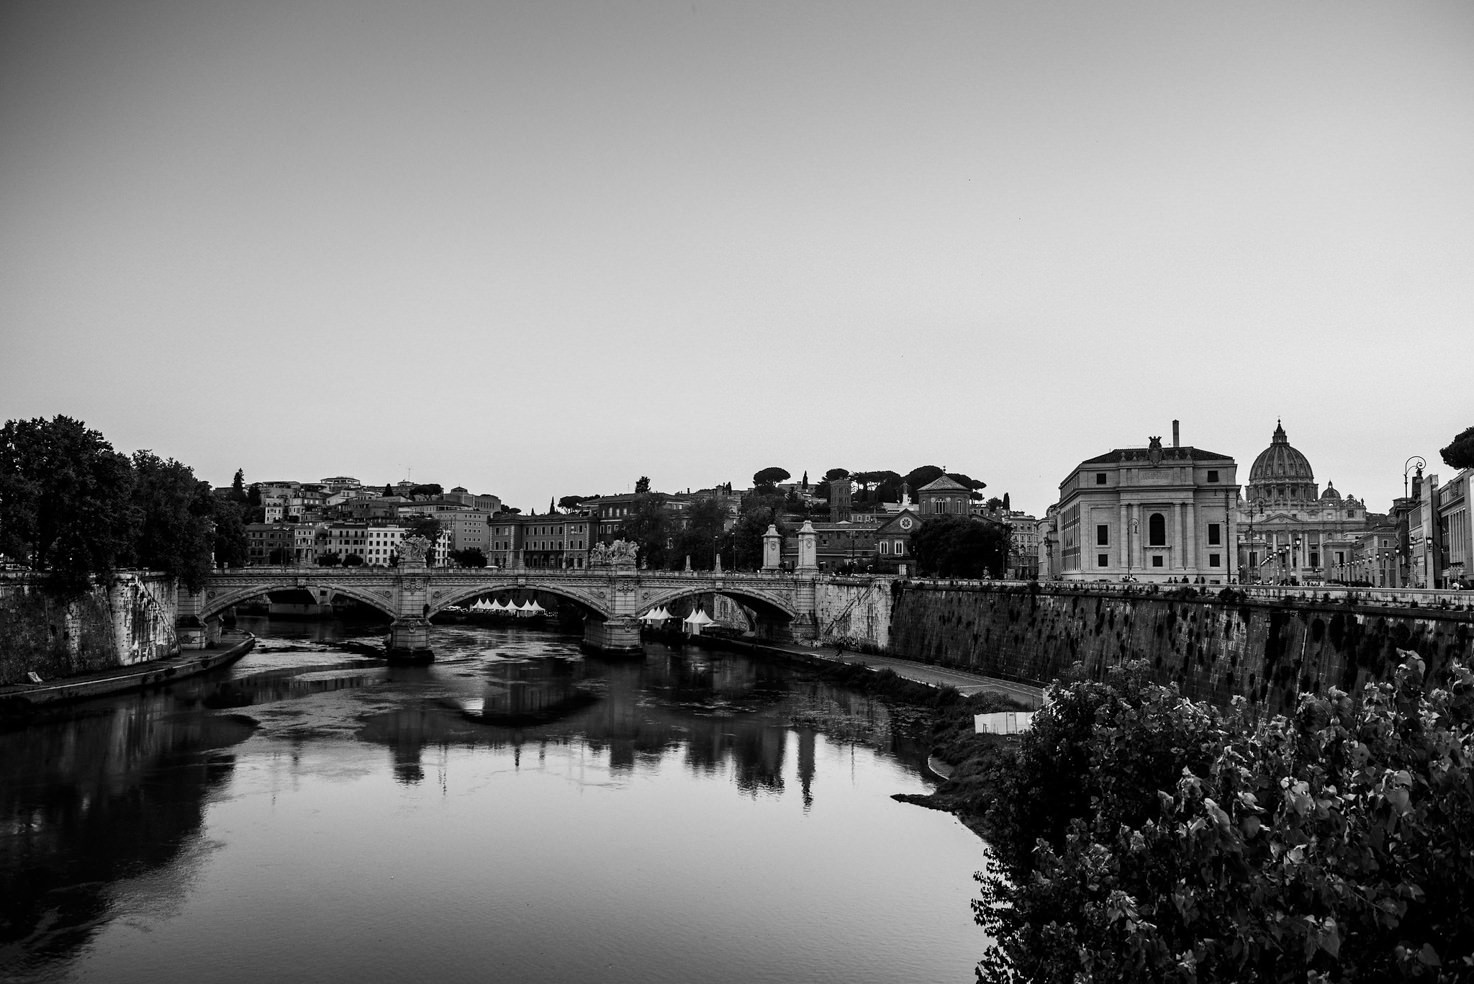 Ponte Sant'Angelo on the Tiber river in Rome